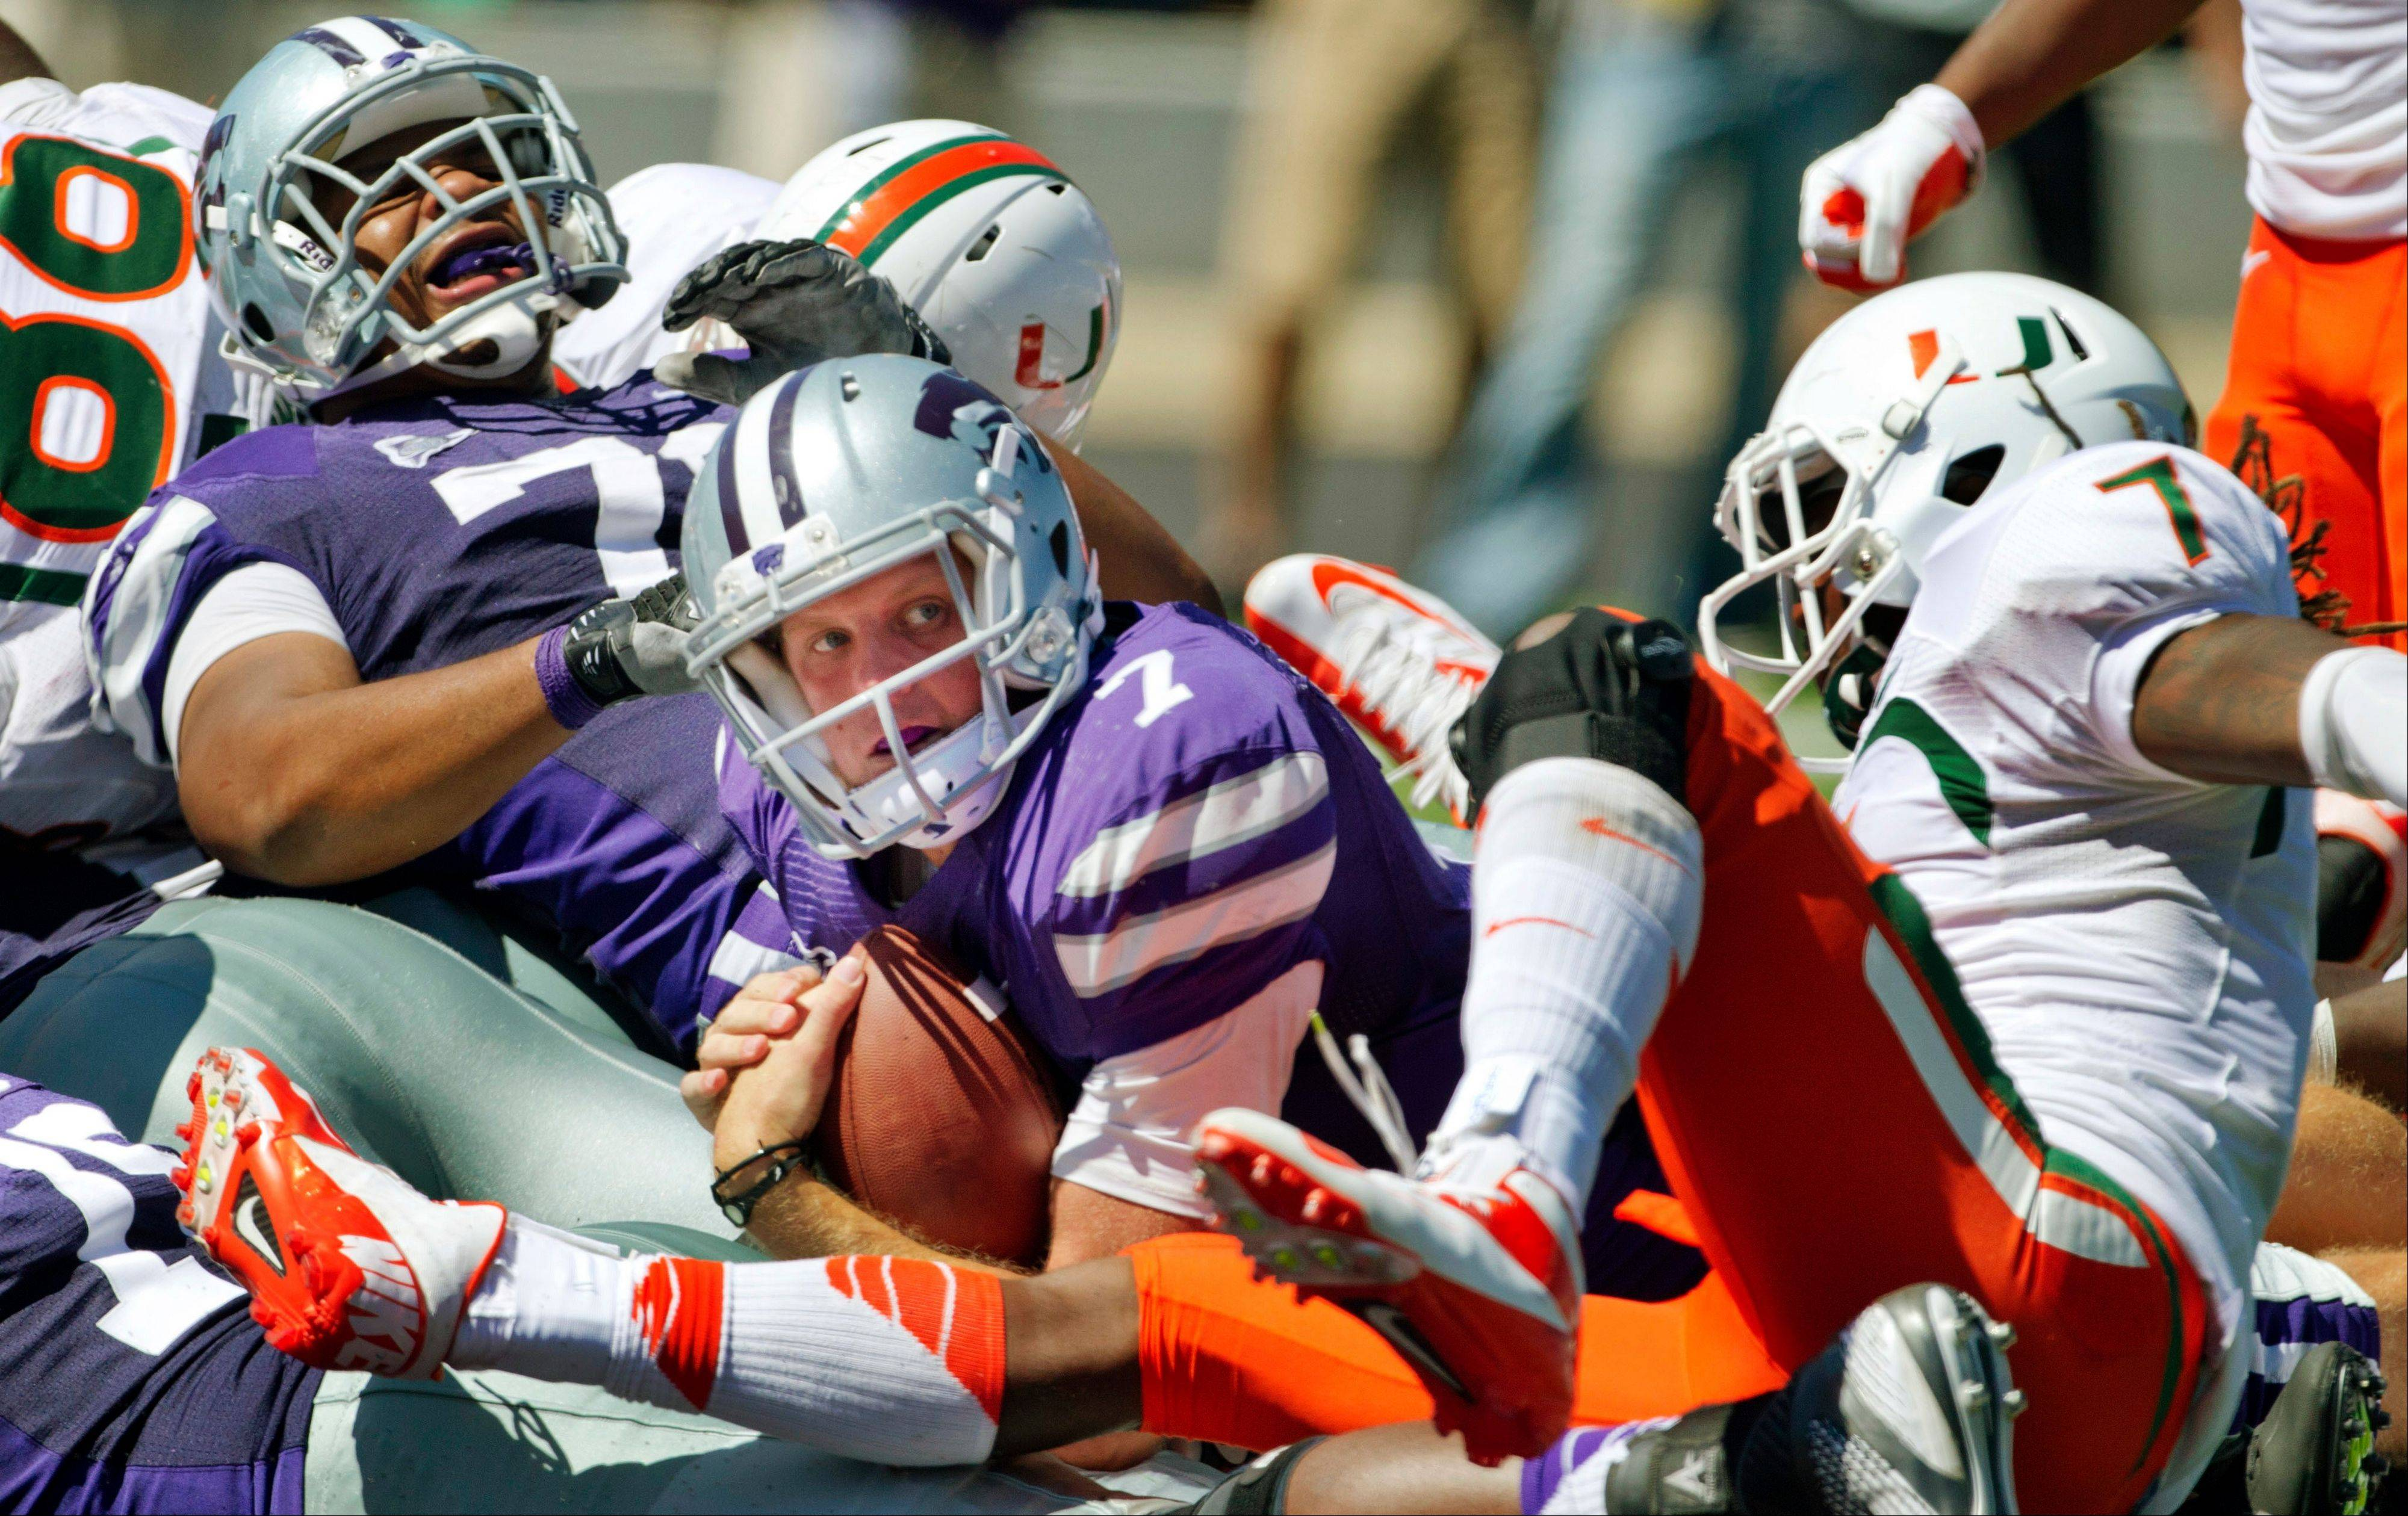 Kansas State quarterback Collin Klein looks for an official's call after crossing the goal line past Miami defensive back Vaughn Telemaque during the second half Saturday in Manhattan, Kan.